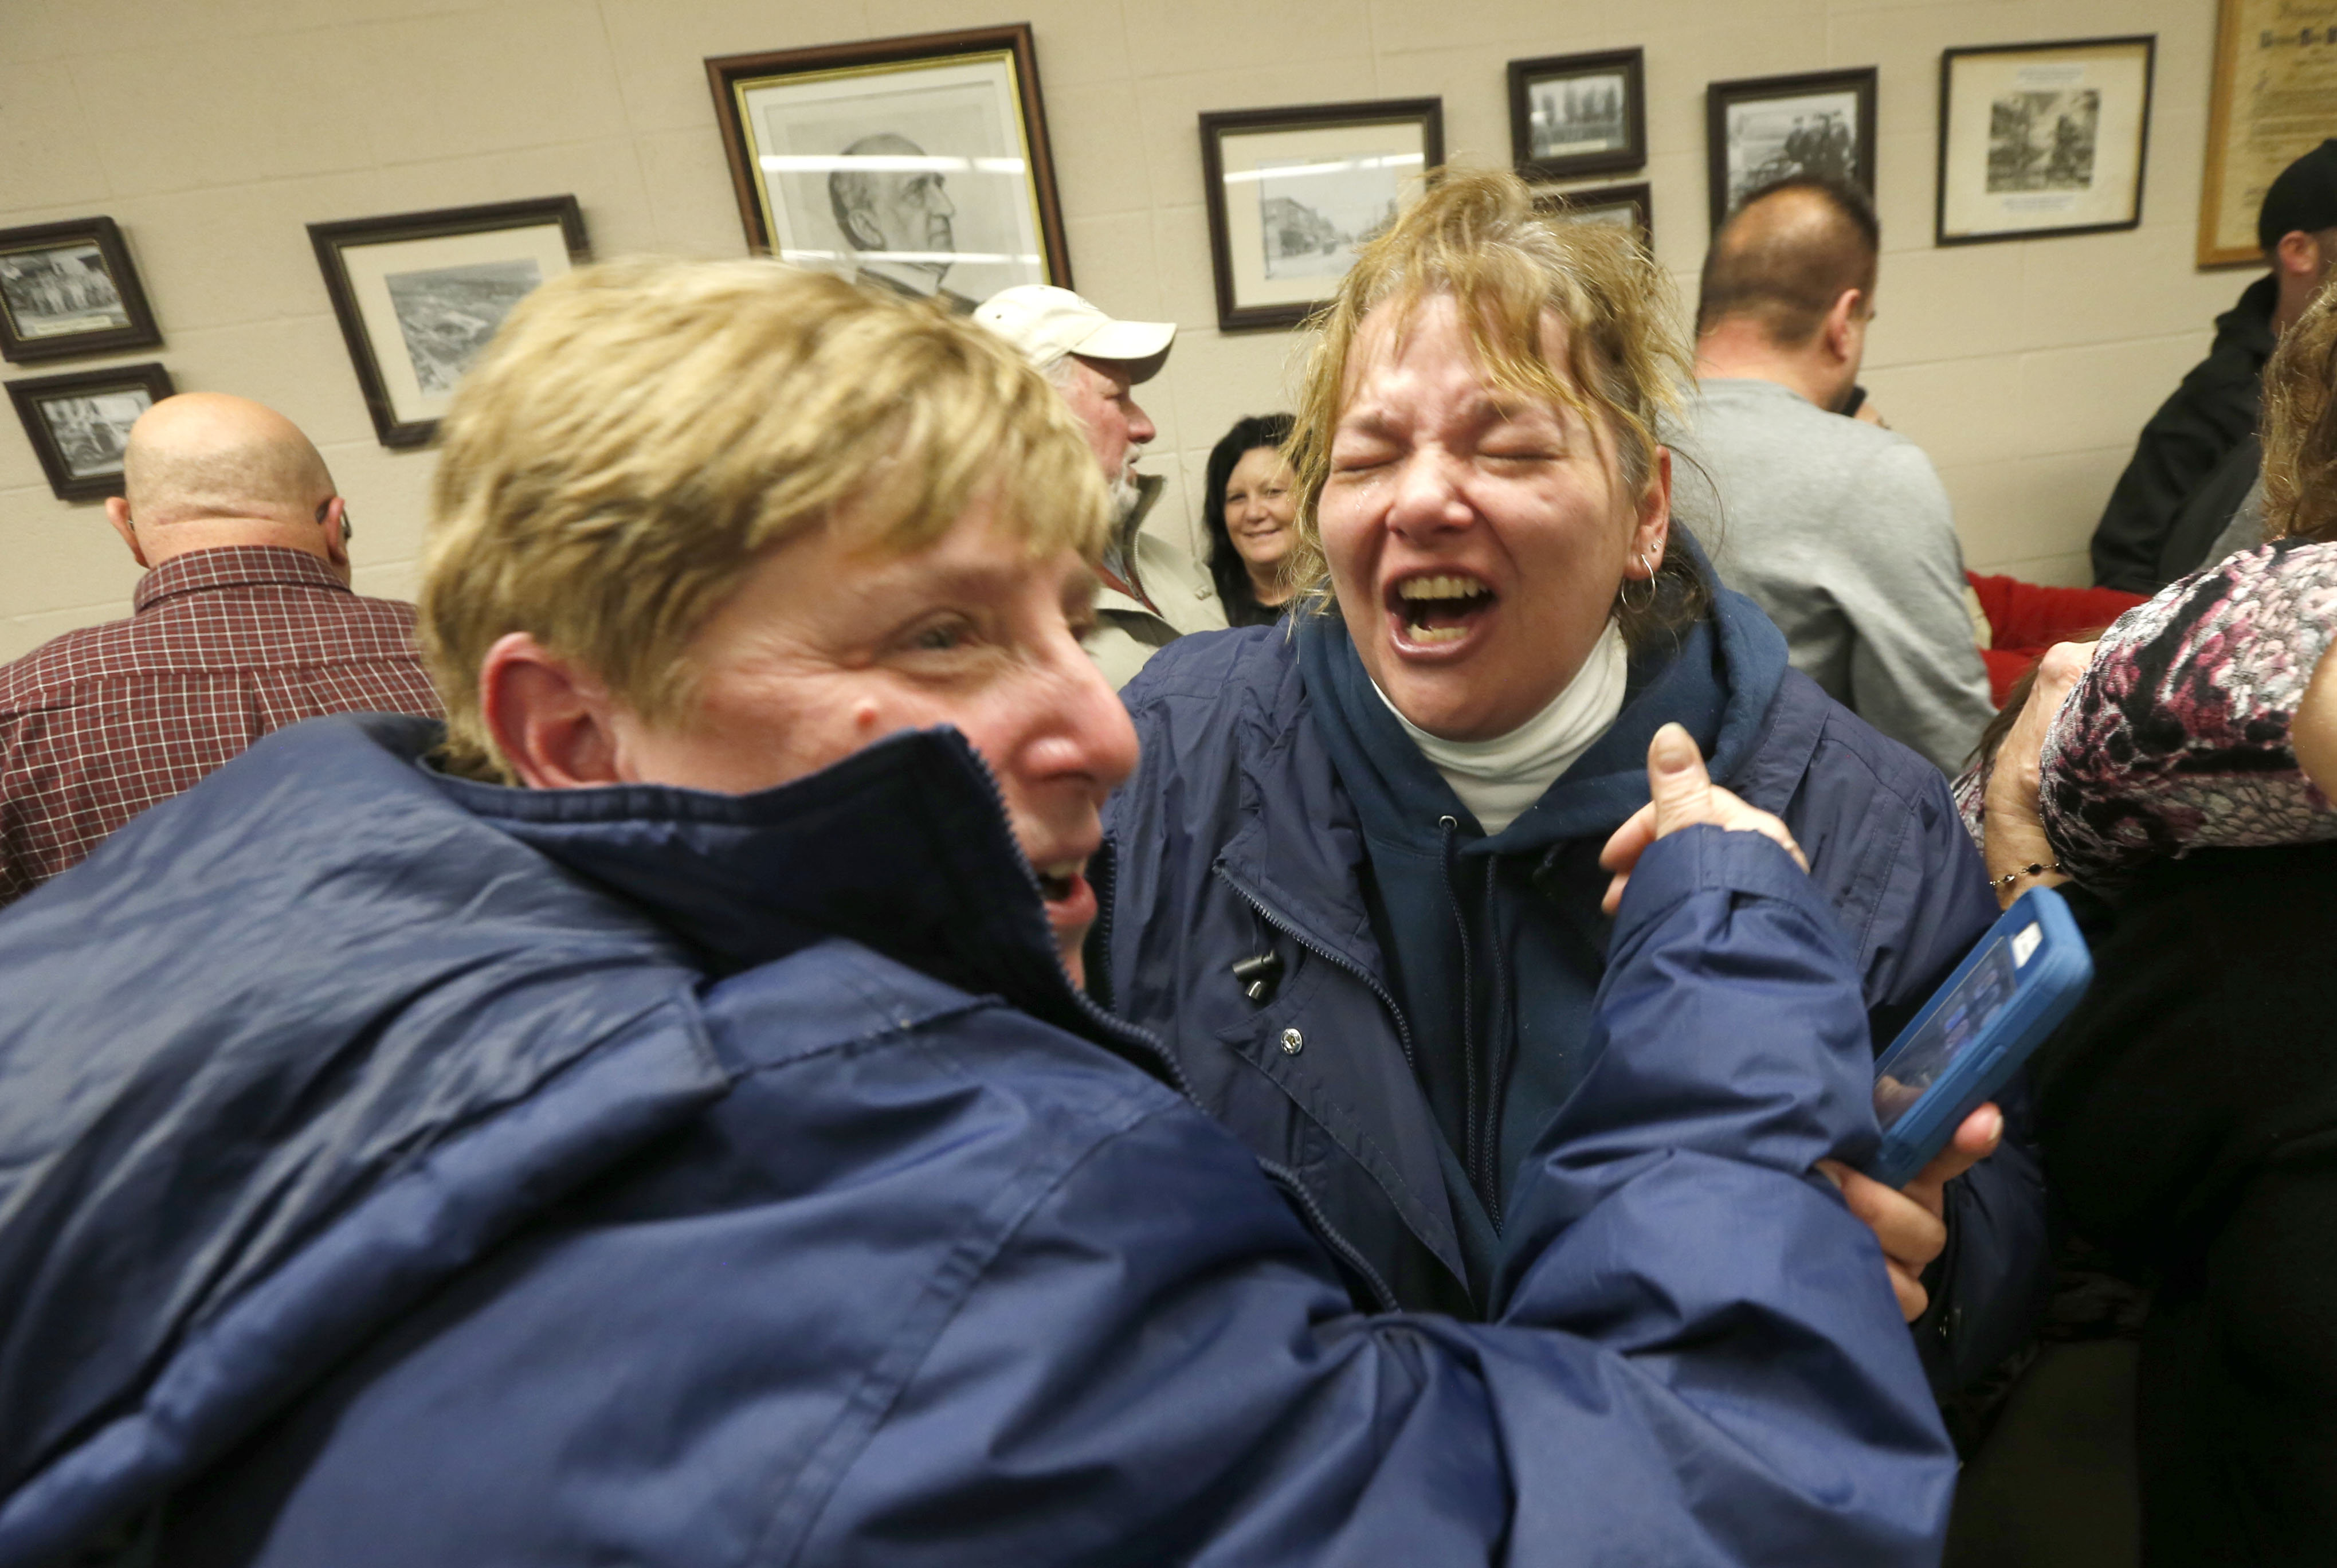 Village of Depew employee Shelley Matthews, right, and Judy Guarino, a 30-year village resident, celebrate Tuesday, Jan. 17, 2017 at Village Hall after voters rejected a referendum to eliminate the village and merge with two towns.   (Robert Kirkham/Buffalo News)